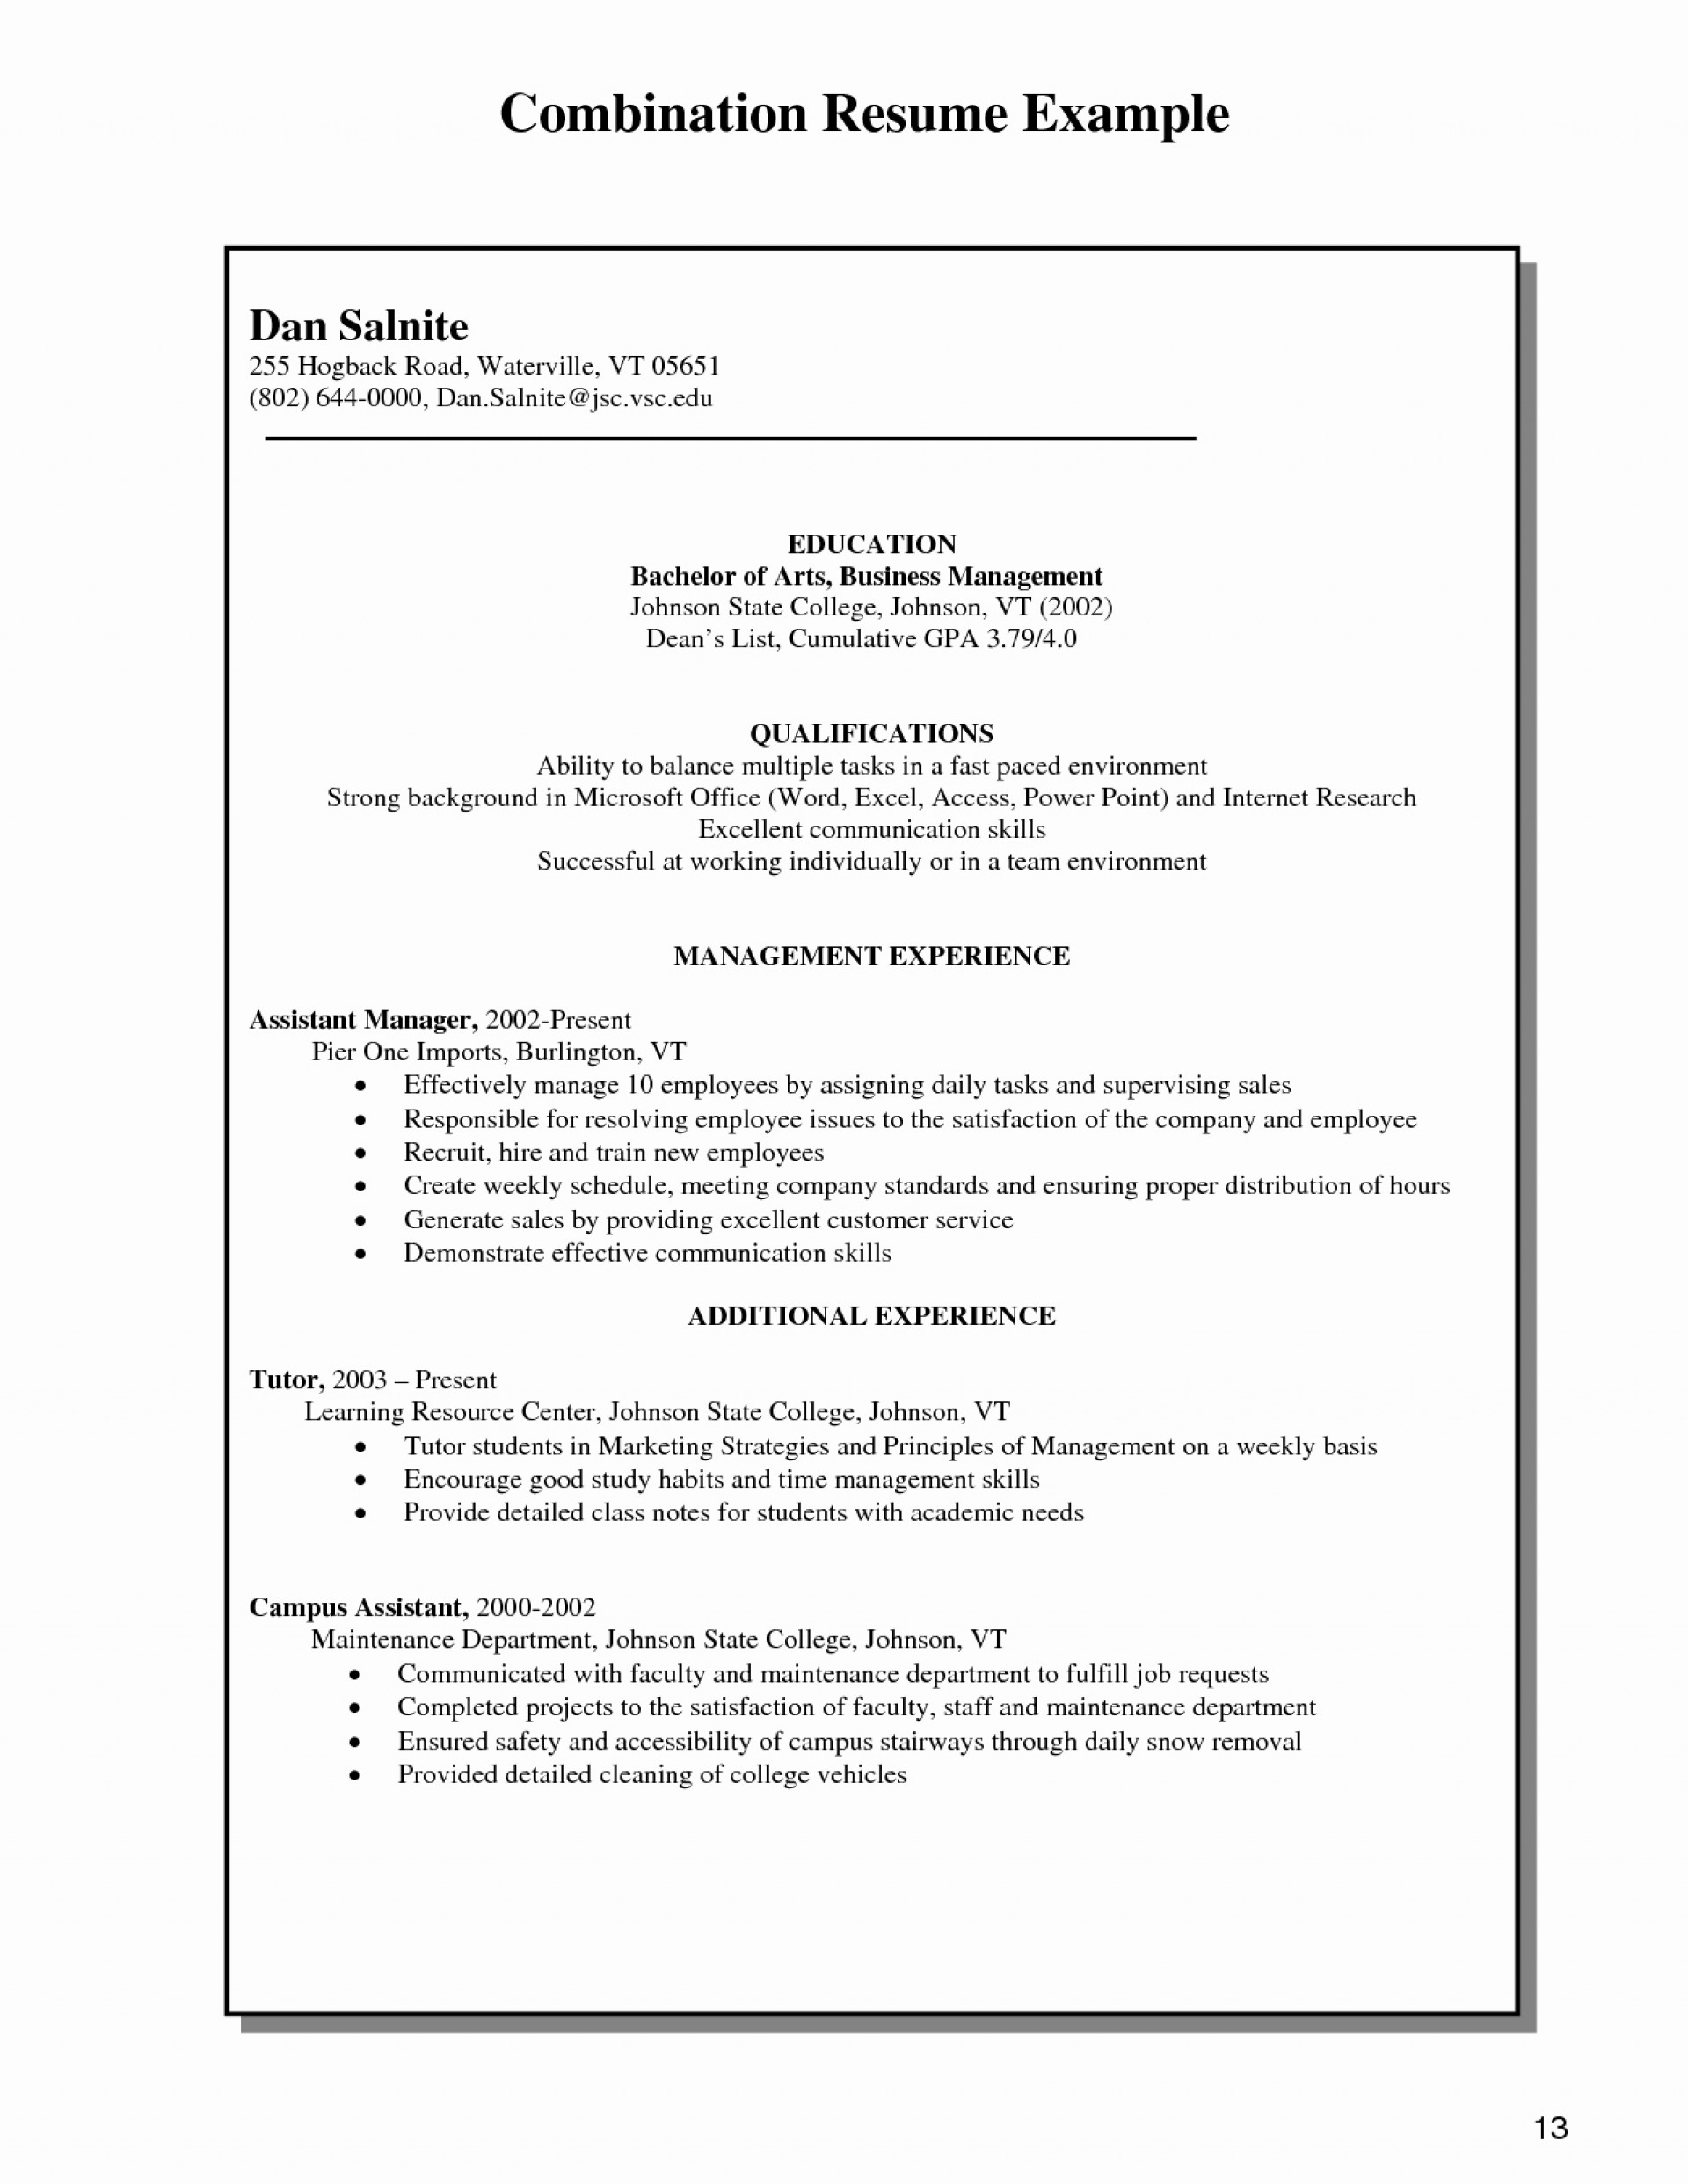 029 Combination Resume Template Word Free Templates 27 1 With Combination Resume Template Word